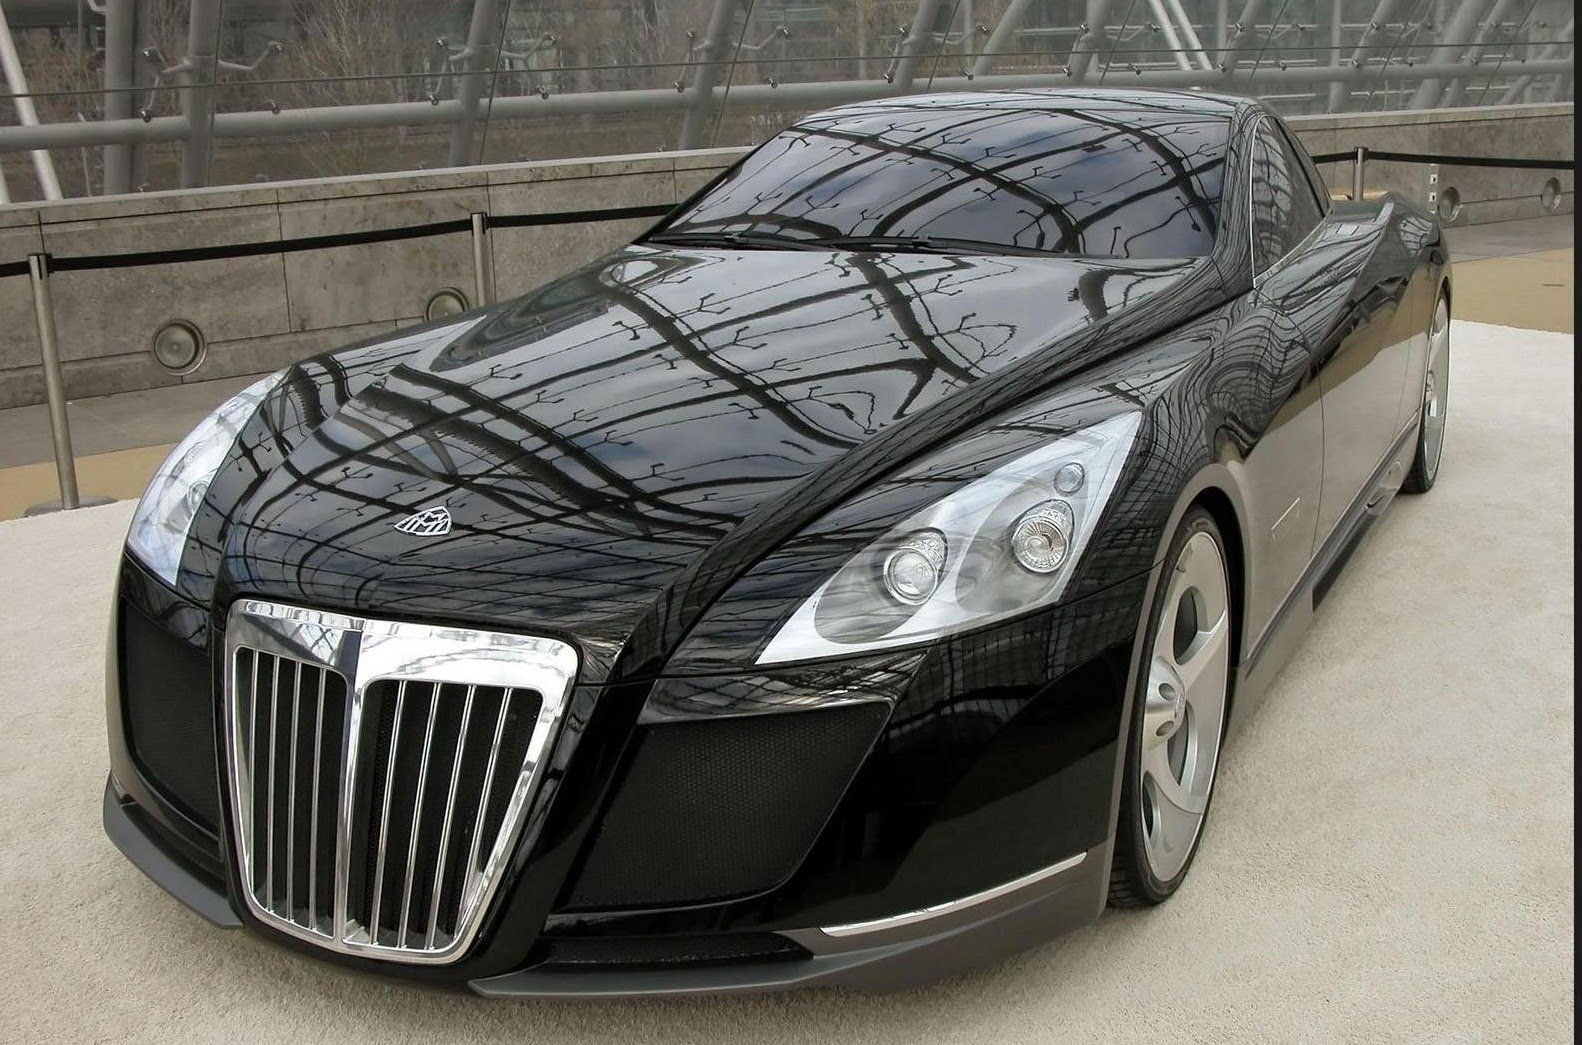 Latest New Maybach Designs Auto Car Free Download